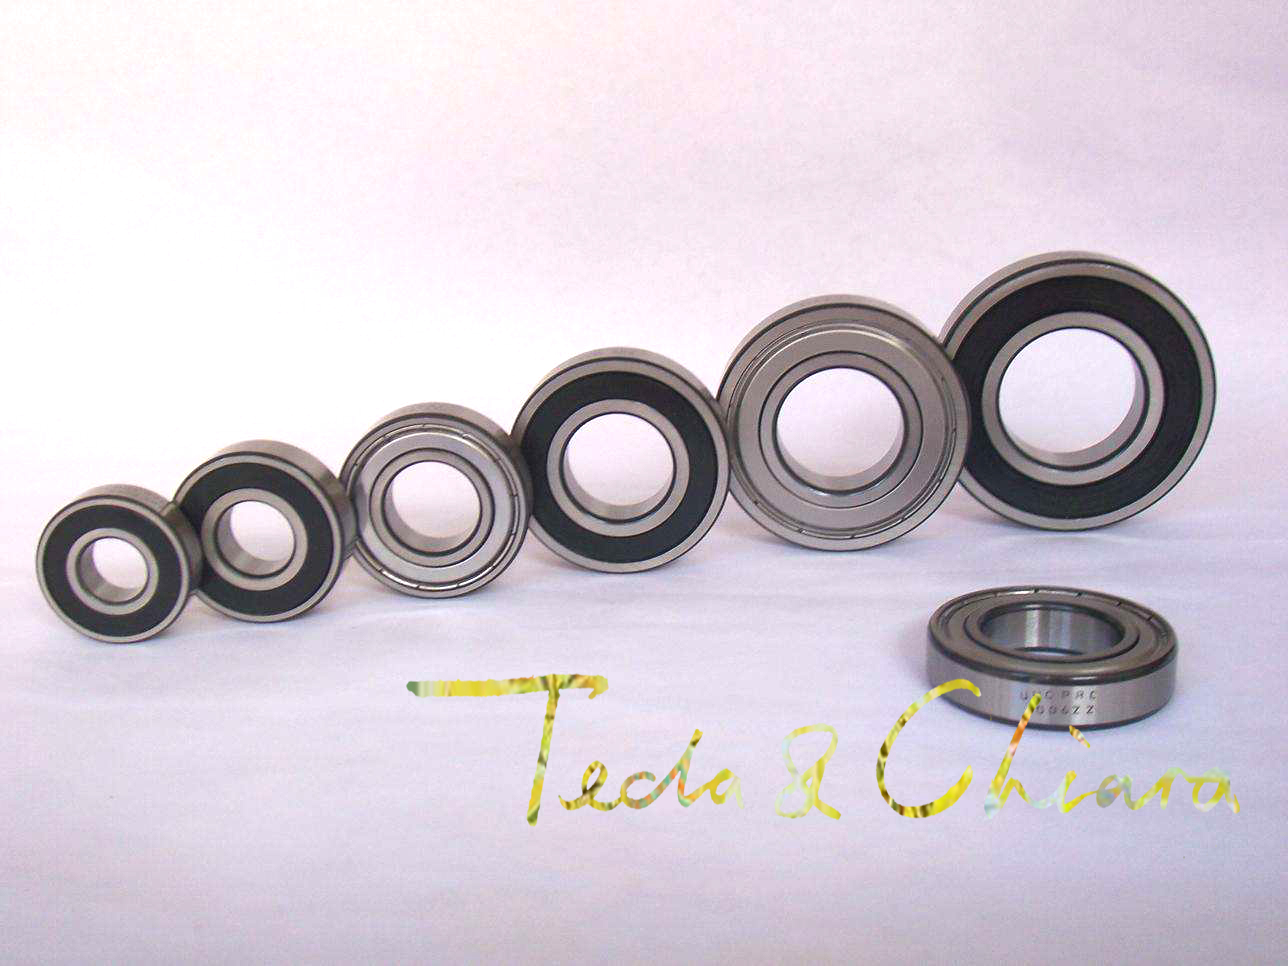 6001 6001ZZ 6001RS 6001-2Z 6001Z 6001-2RS ZZ RS RZ 2RZ Deep Groove Ball Bearings 12 x 28 x 8mm High Quality купить в Москве 2019